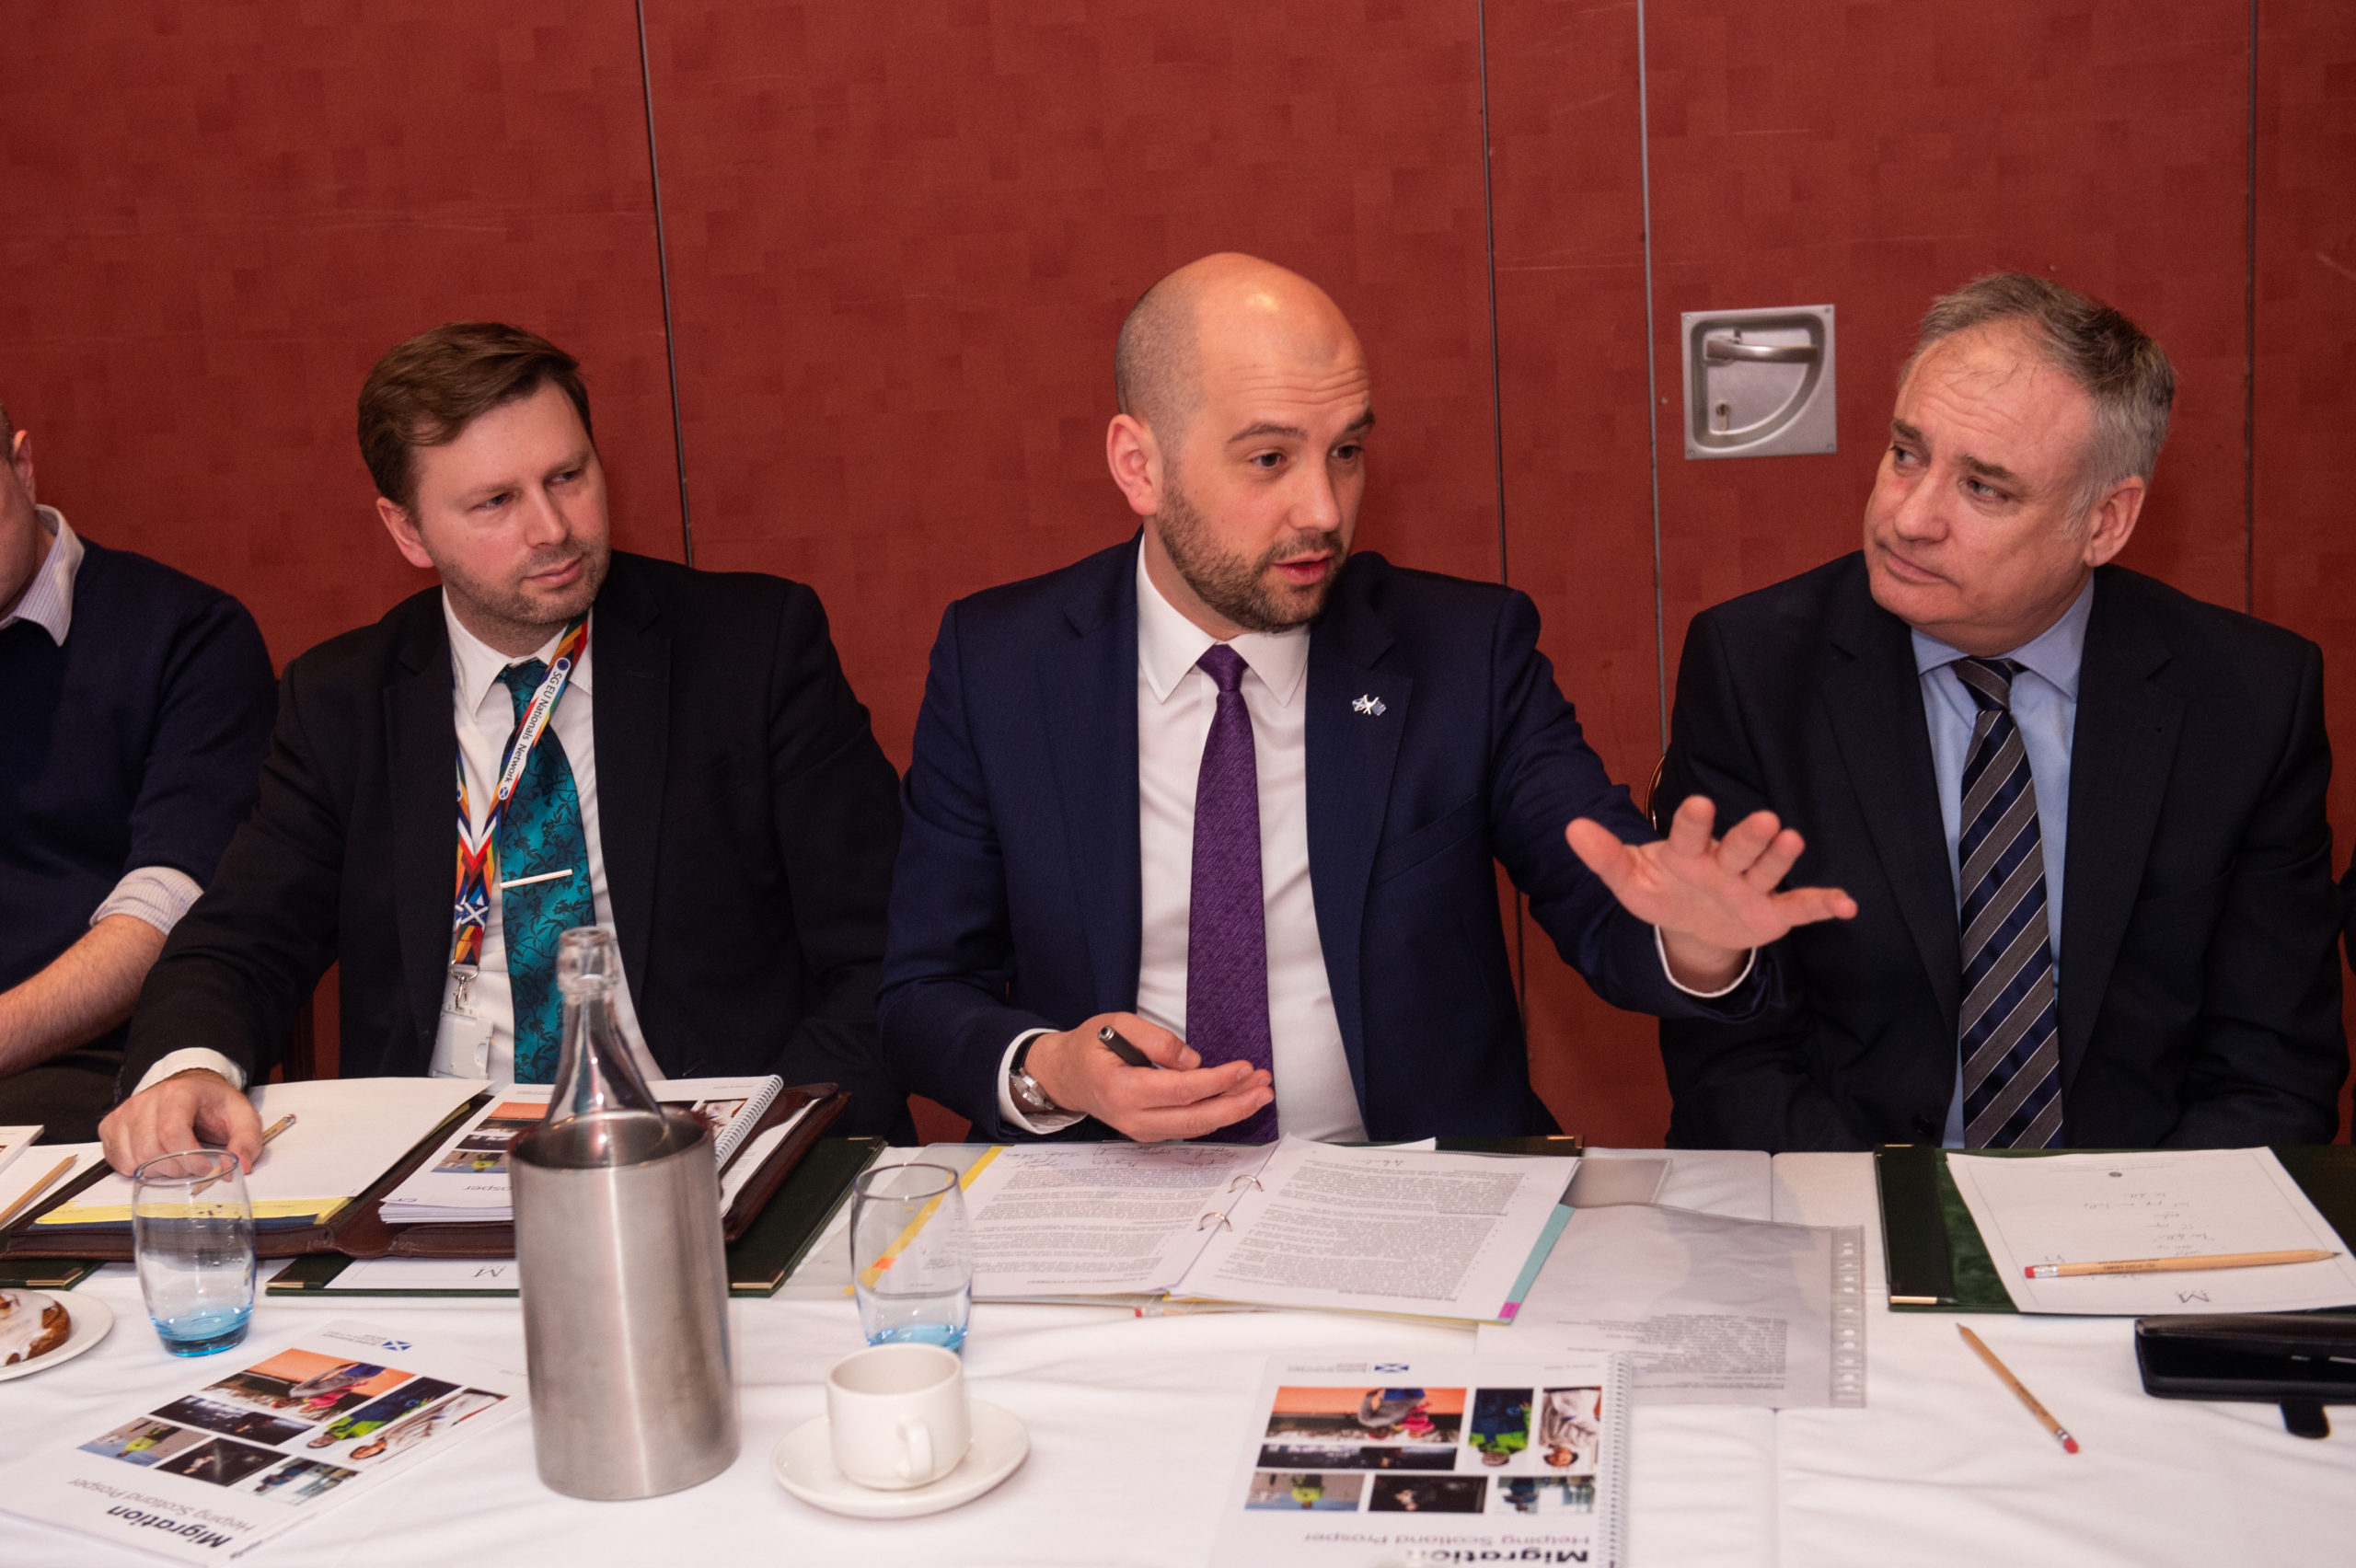 Scottish Government minister Ben Macpherson, pictured centre, addresses the Elgin meeting.  Picture by Jason Hedges.